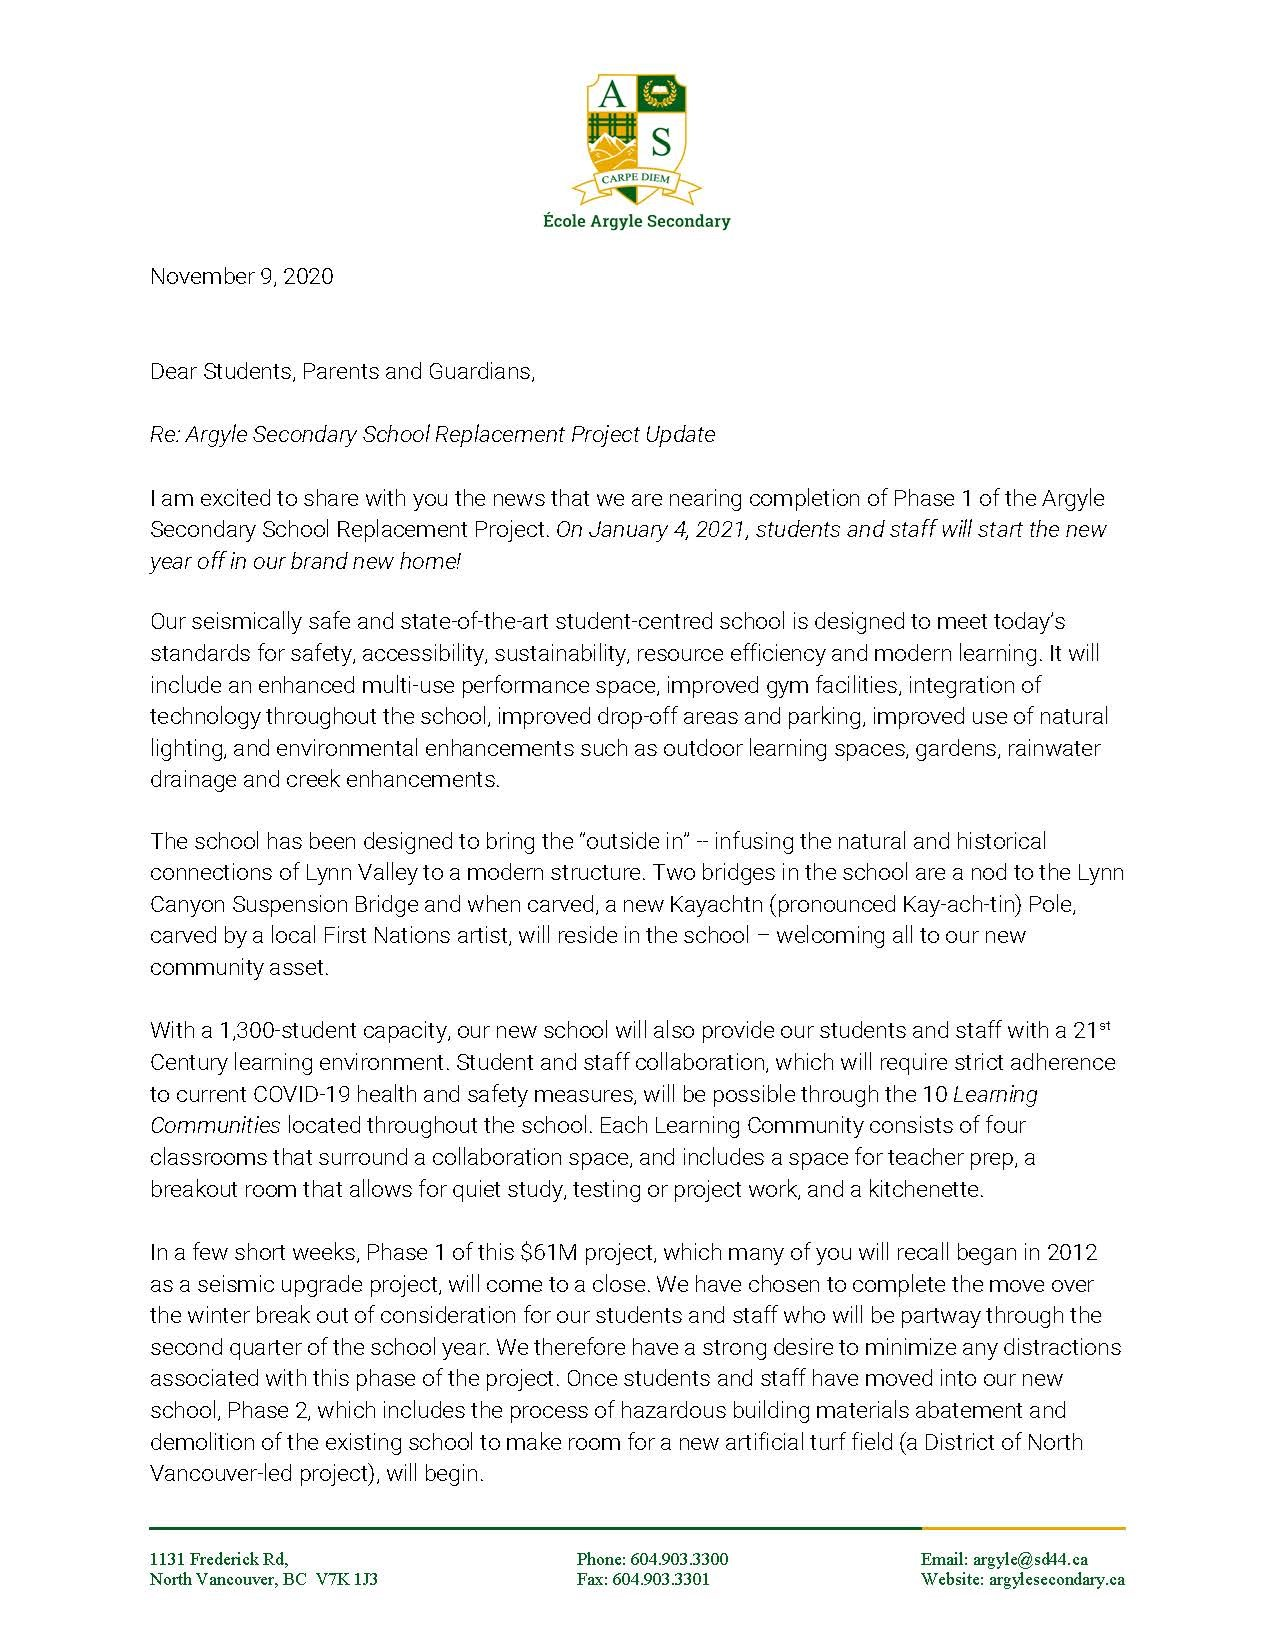 Argyle Replacement Project Update_Letter to Community_11092020_Page_1.jpg